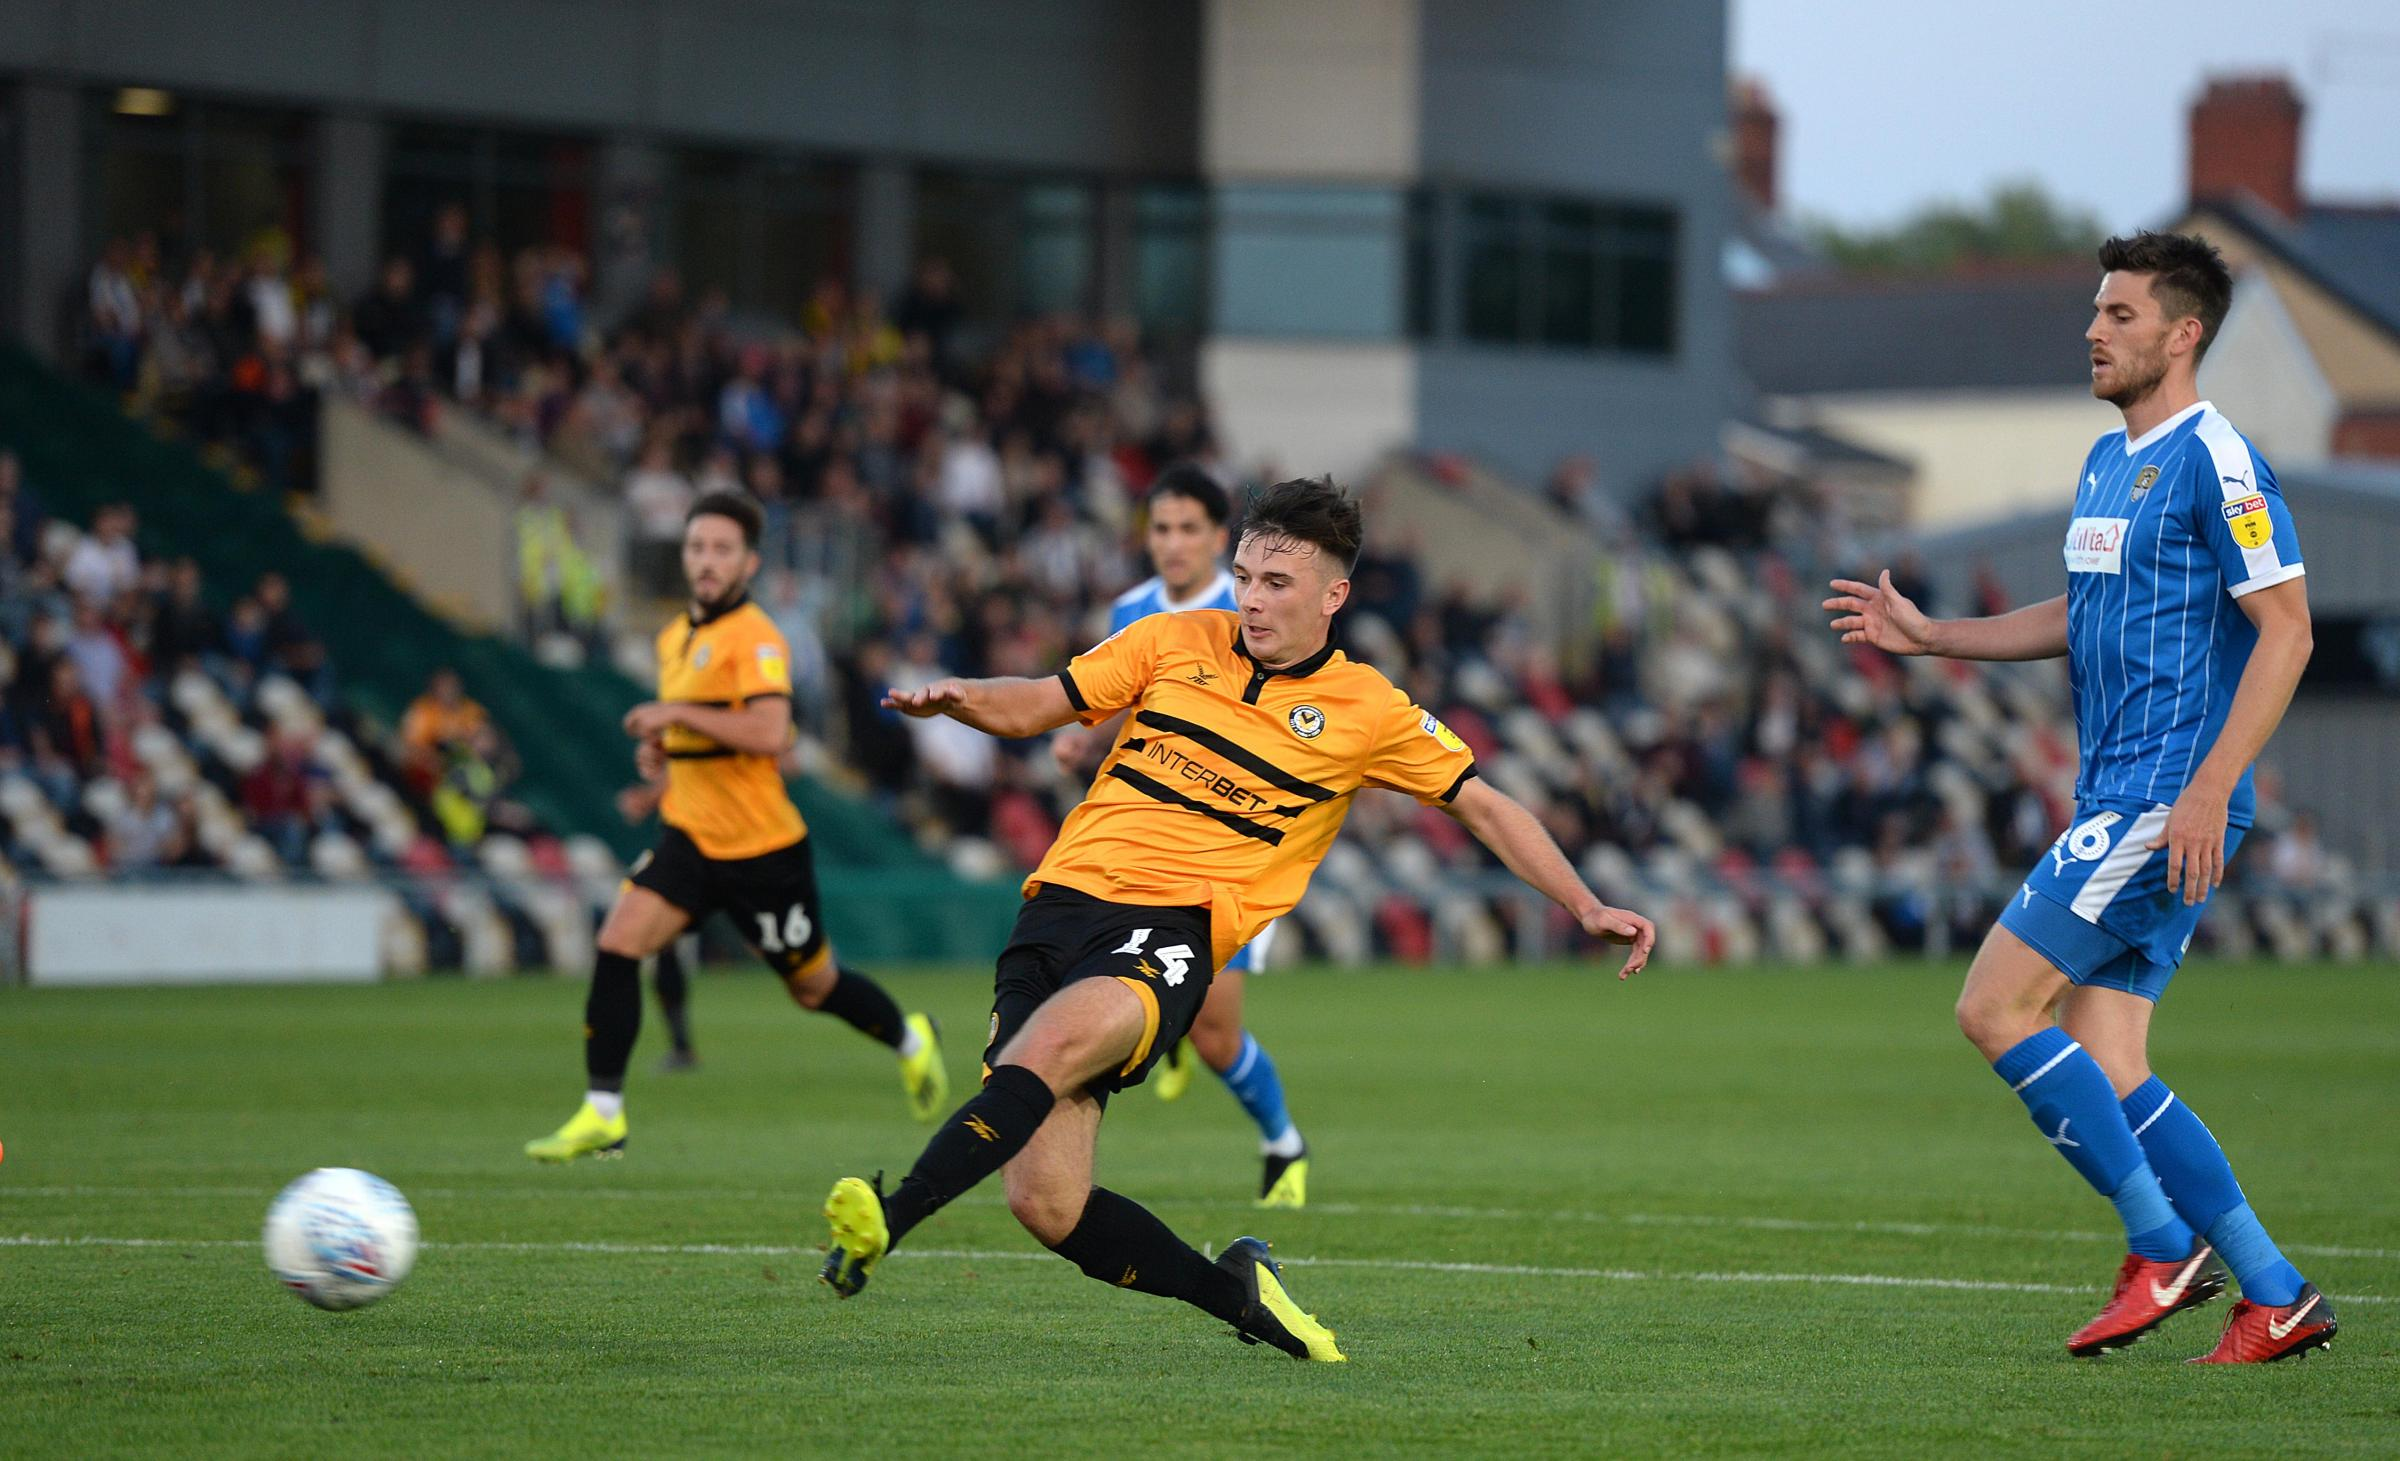 GOAL: Mark Harris puts Newport County 2-1 up against Notts County. Pictures: Huw Evans Agency